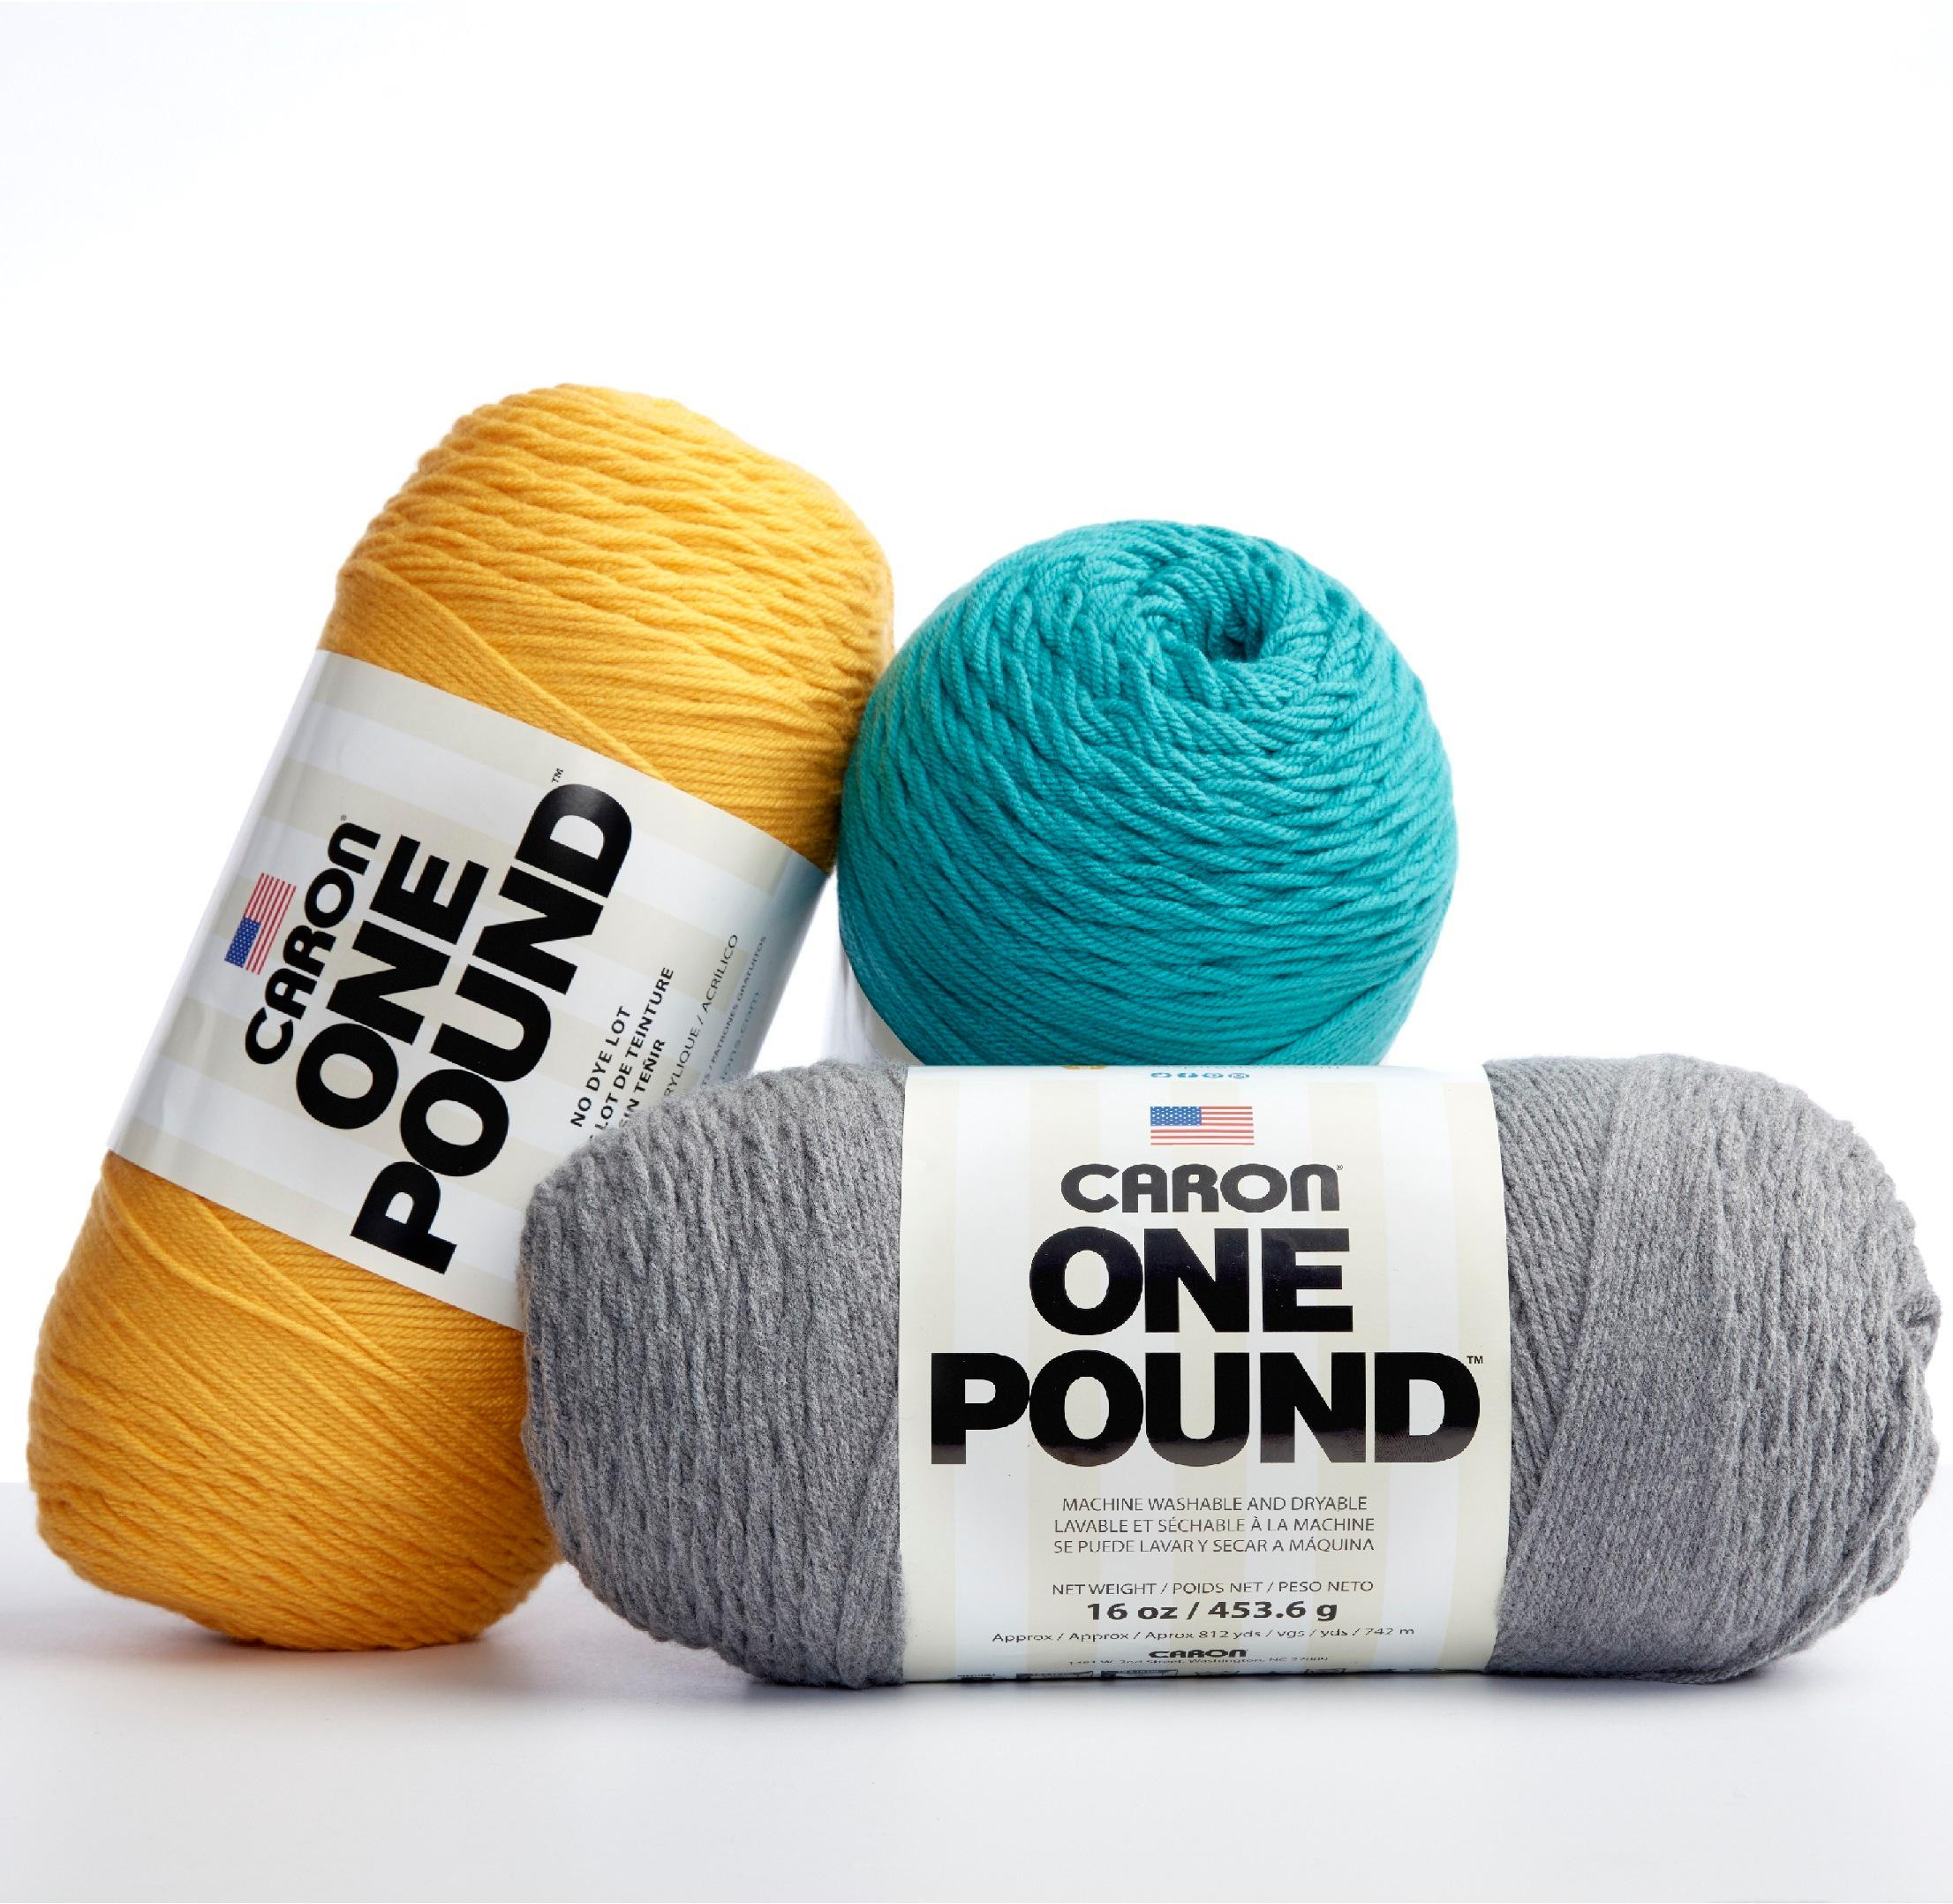 Elegant Amazon Caron E Pound solids Yarn 4 Medium Gauge Caron Pound Yarn Of Gorgeous 48 Pictures Caron Pound Yarn